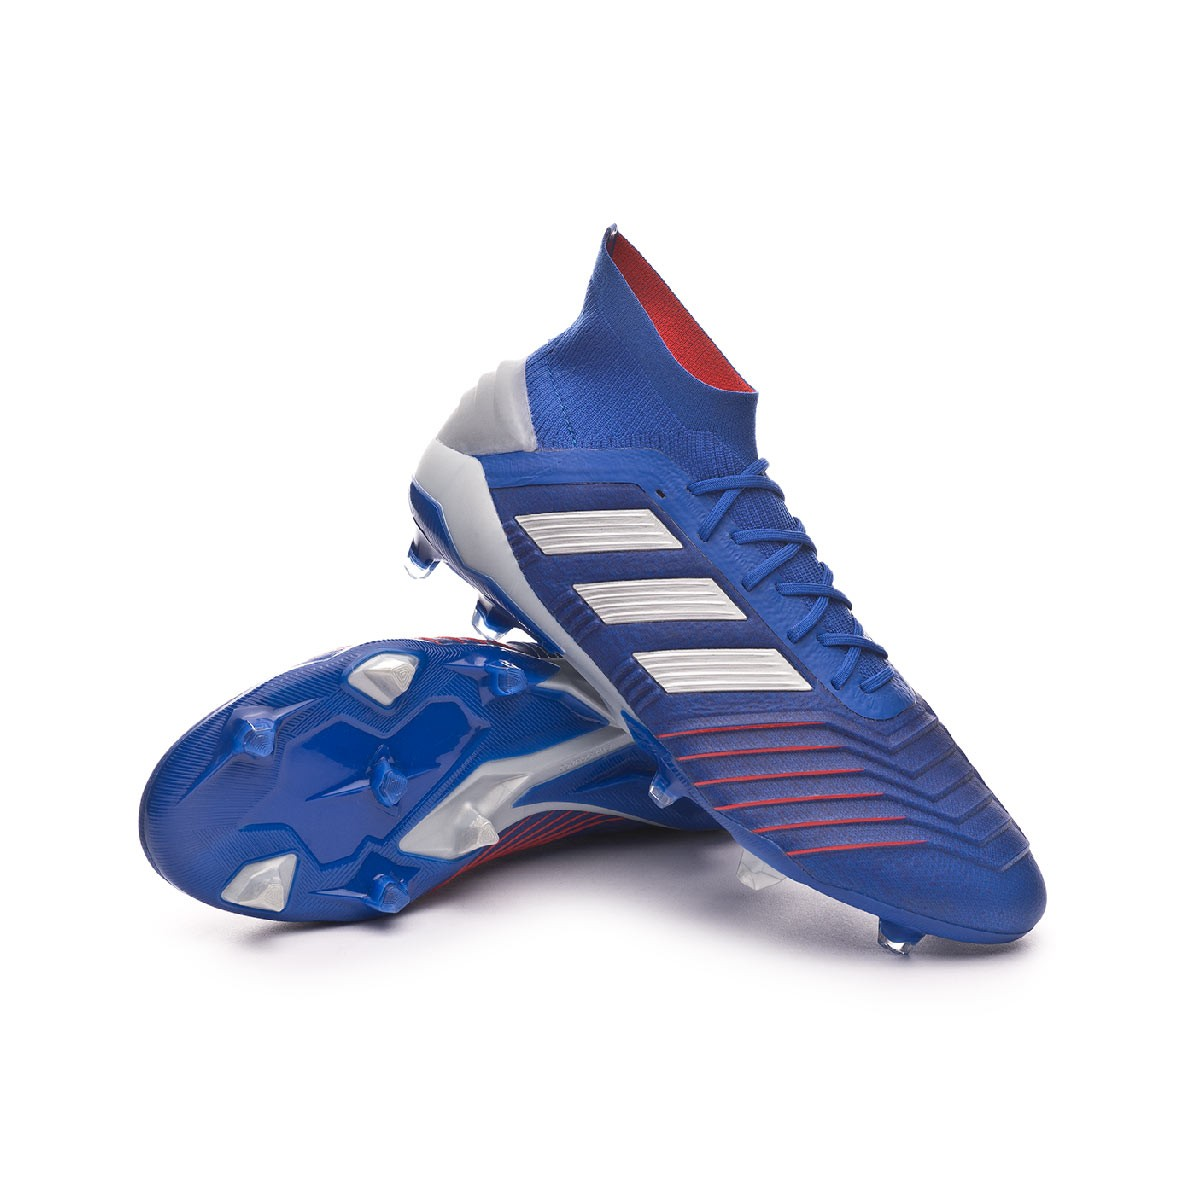 12e51988915 adidas Predator 19.1 FG Football Boots. Bold blue-Silver metallic-Football  ...